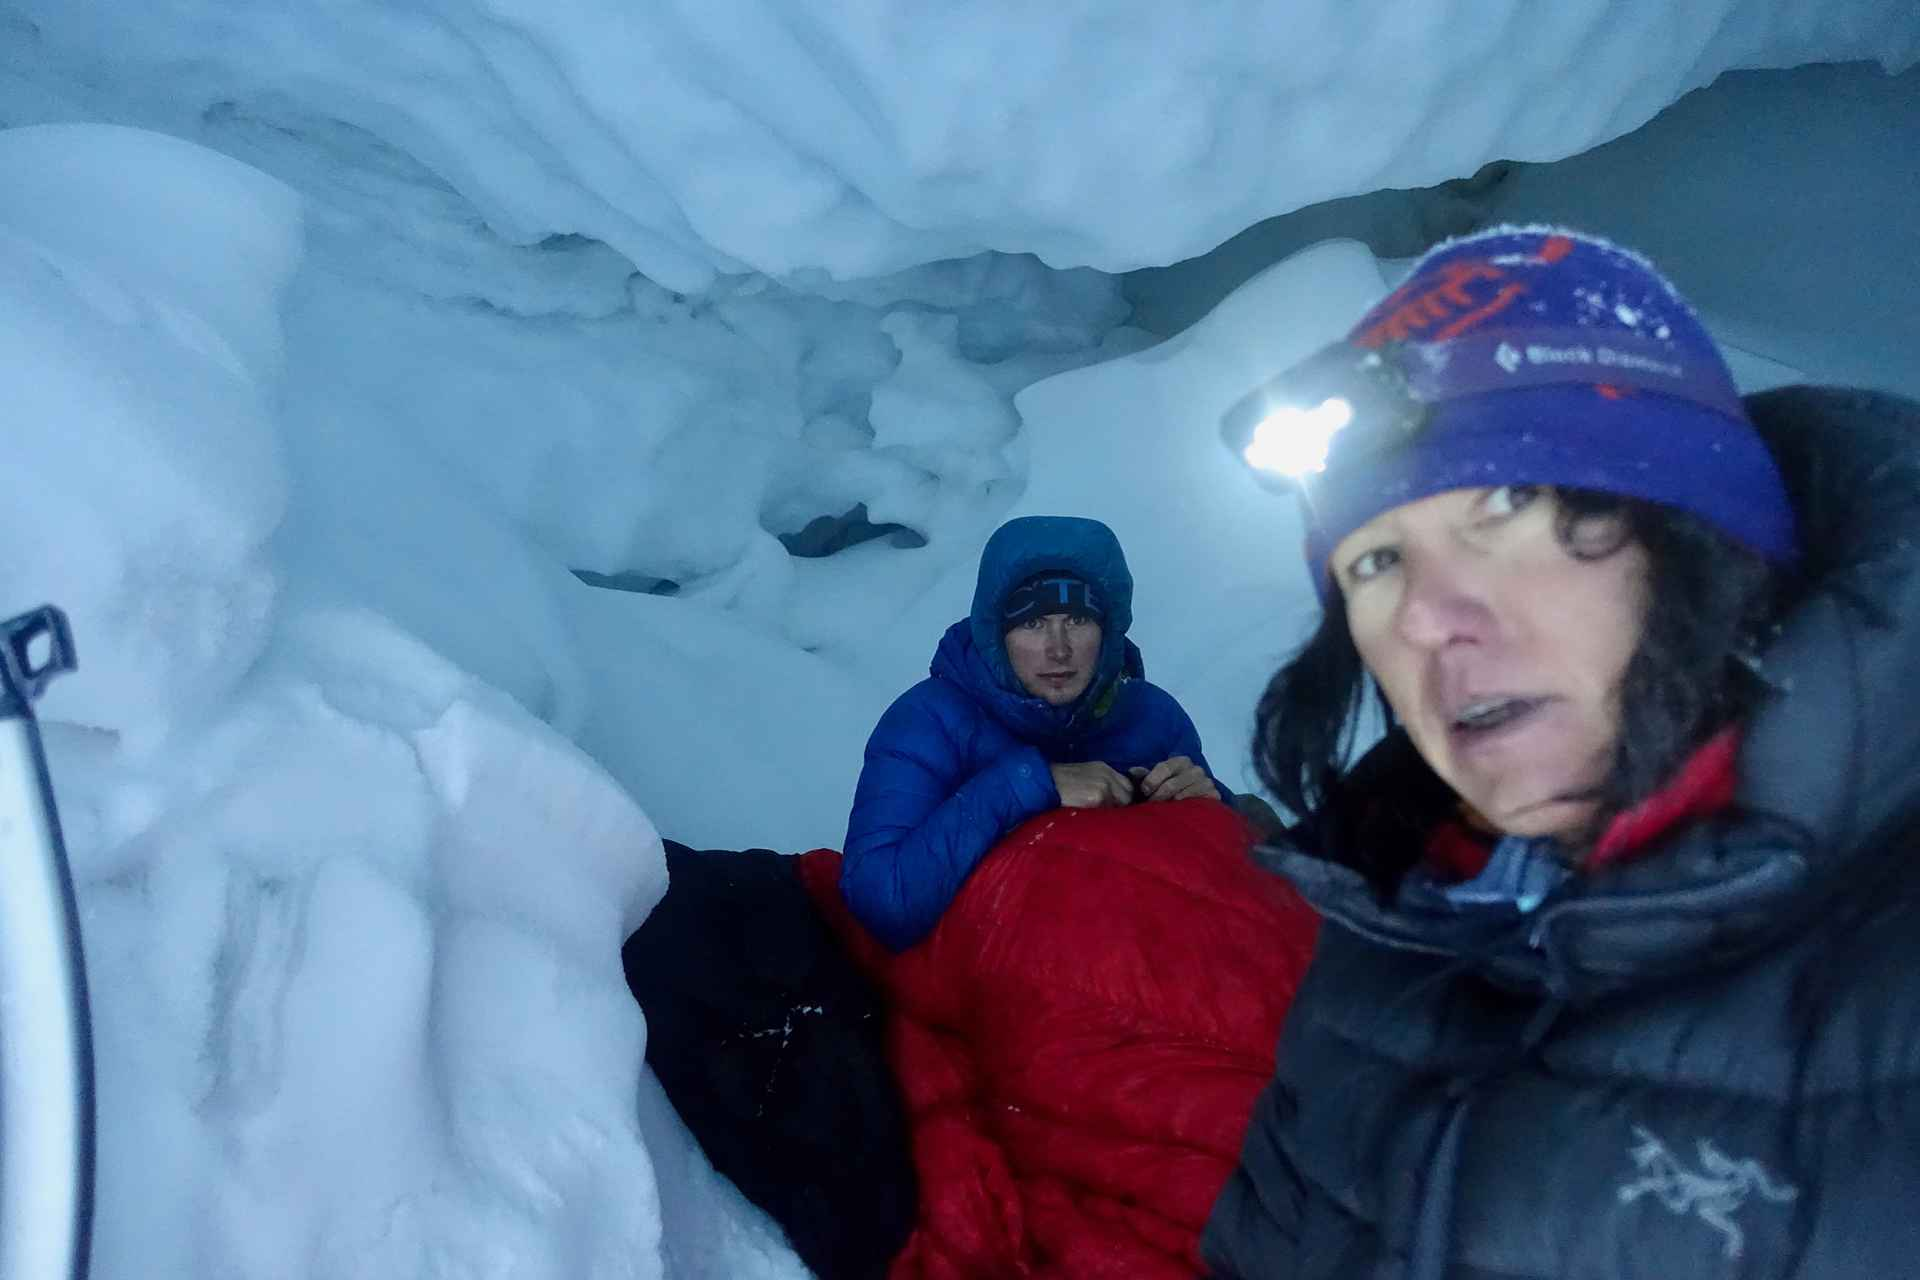 In the ice cave after the avalanche on Nyanang Ri.